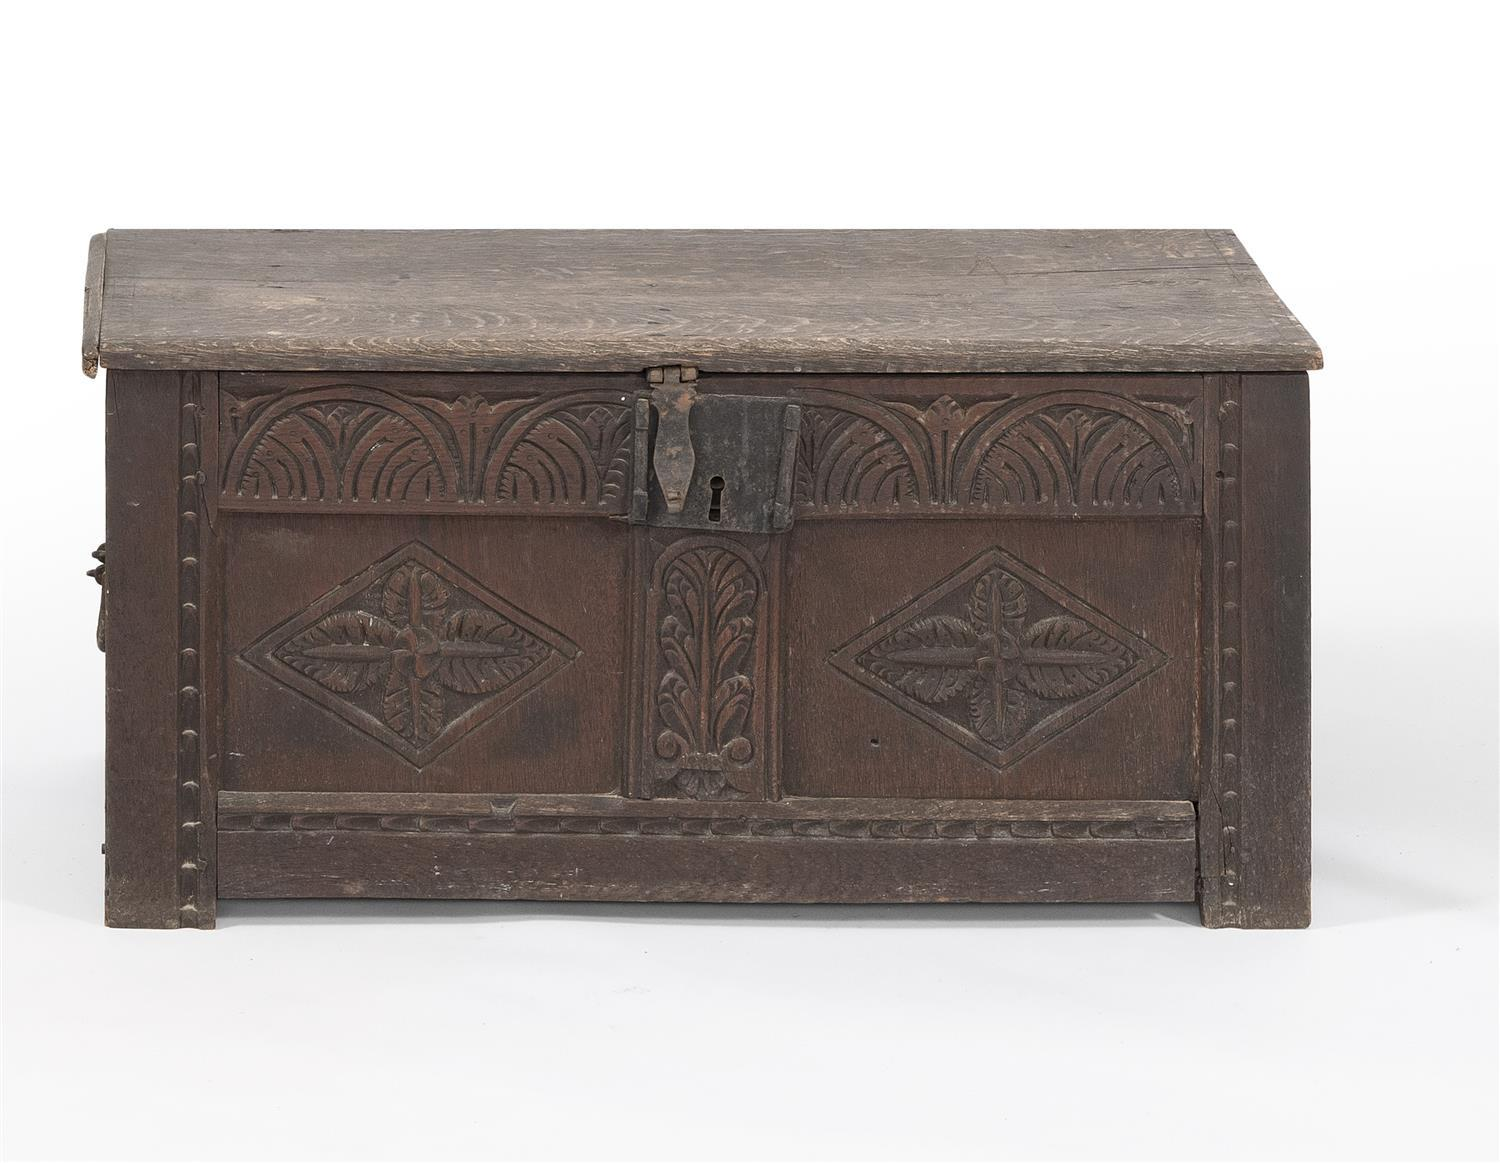 """LIFT-TOP BLANKET BOX In oak, with iron strap hinges. Carved paneled front. Height 16.5"""". Width 35.25"""". Depth 17""""."""